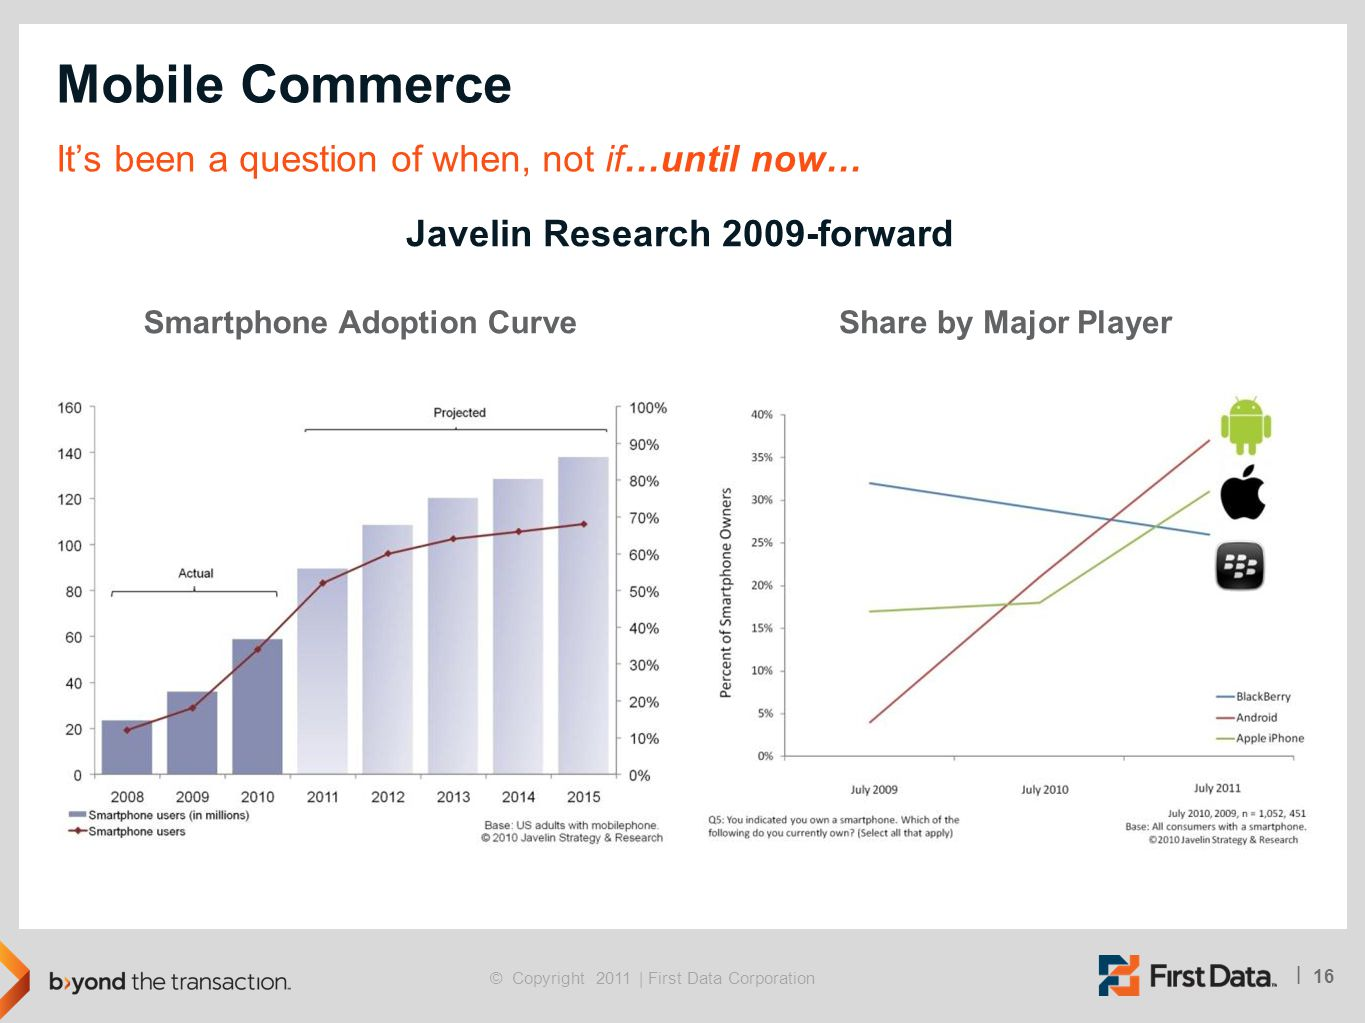 Javelin Research 2009-forward Smartphone Adoption Curve